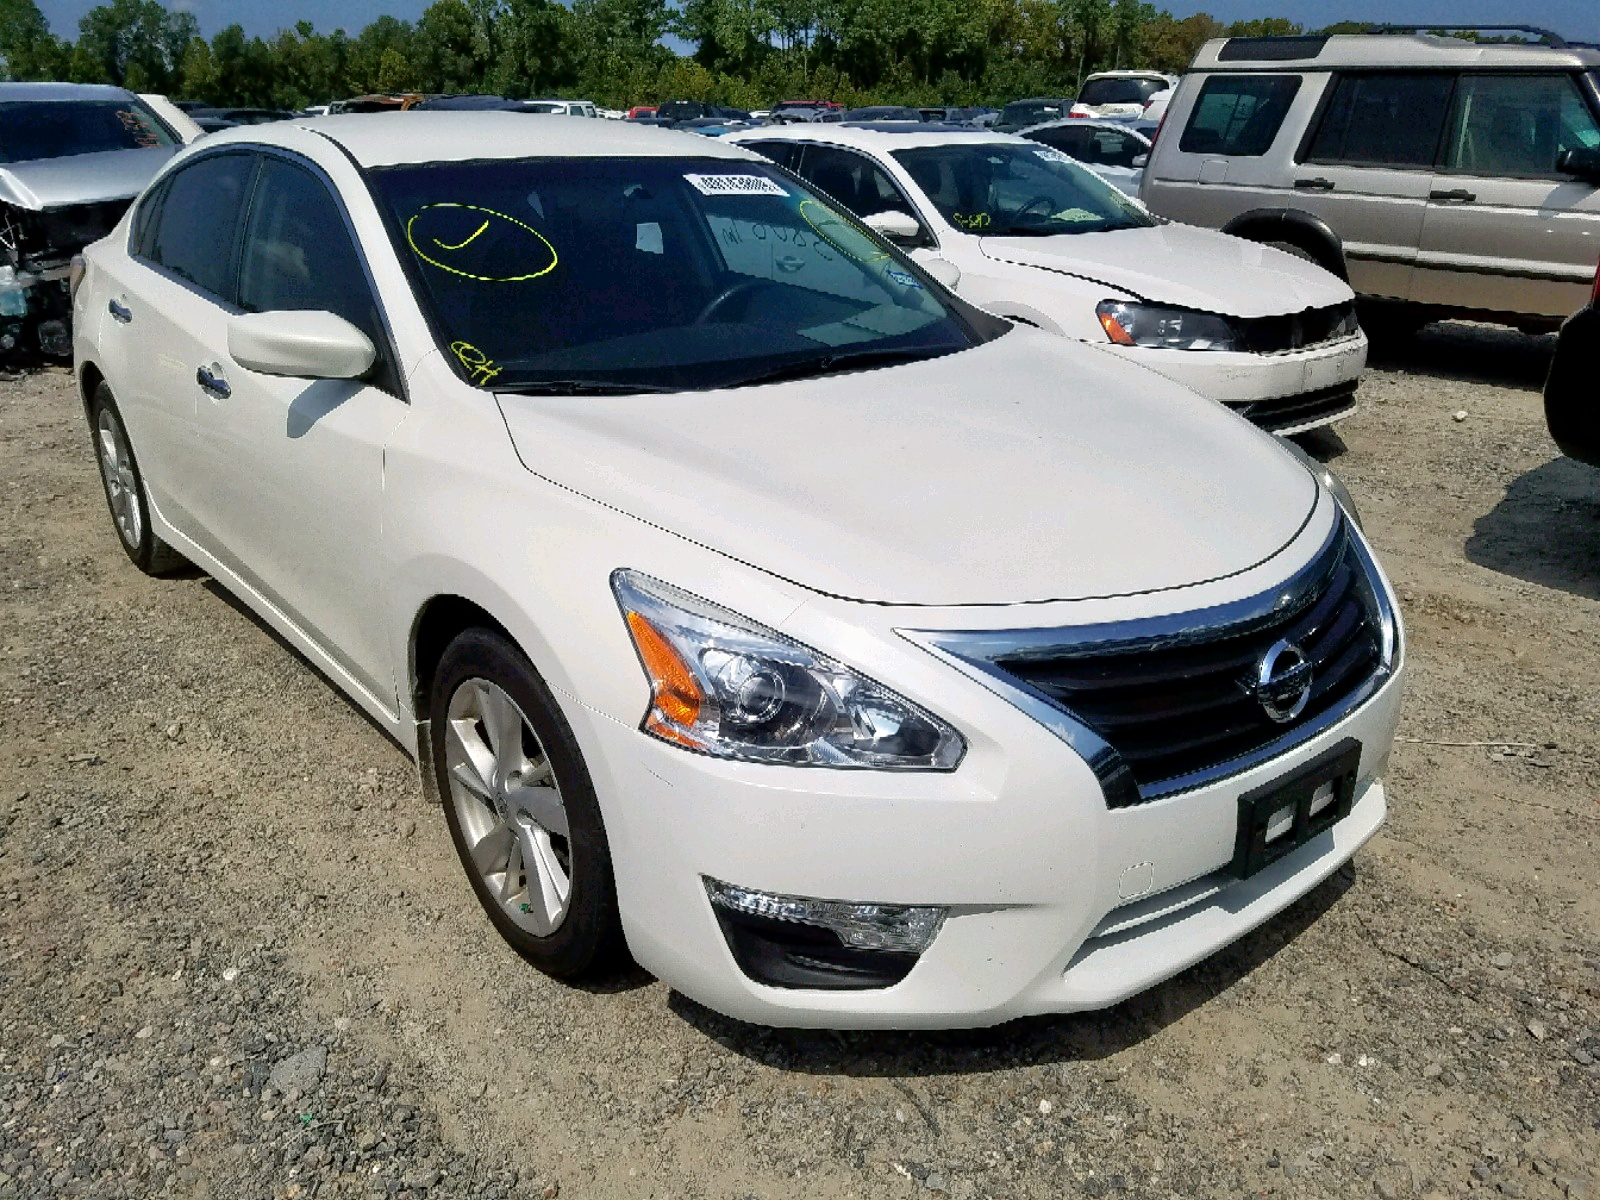 1N4AL3AP2EC284882 - 2014 Nissan Altima 2.5 2.5L Left View